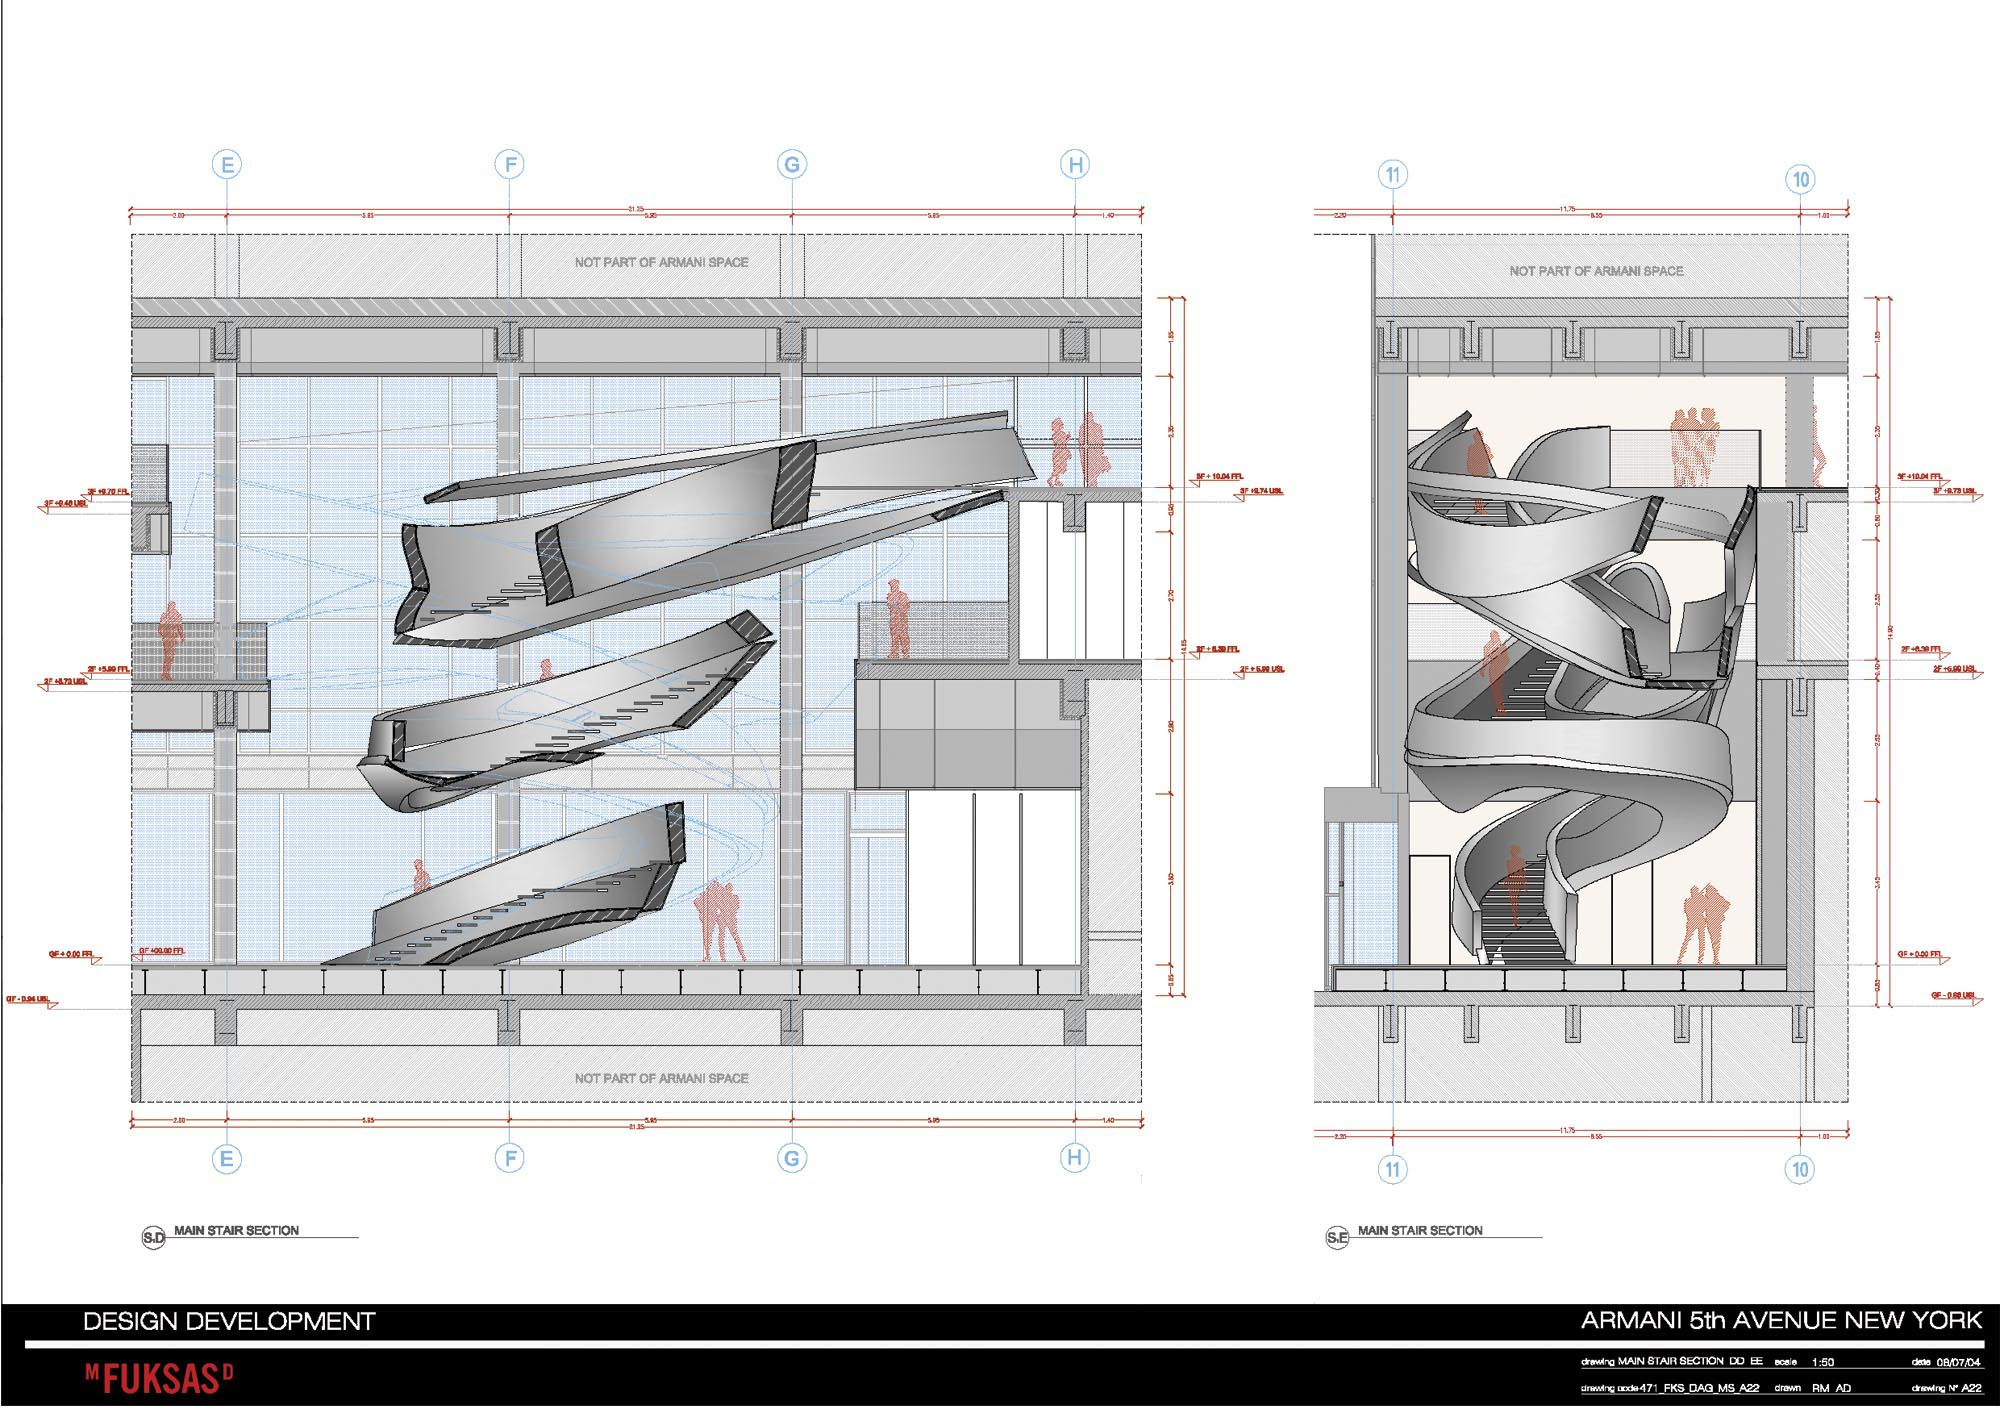 fuksas-5th-ave-zzz-stairs-sections-01